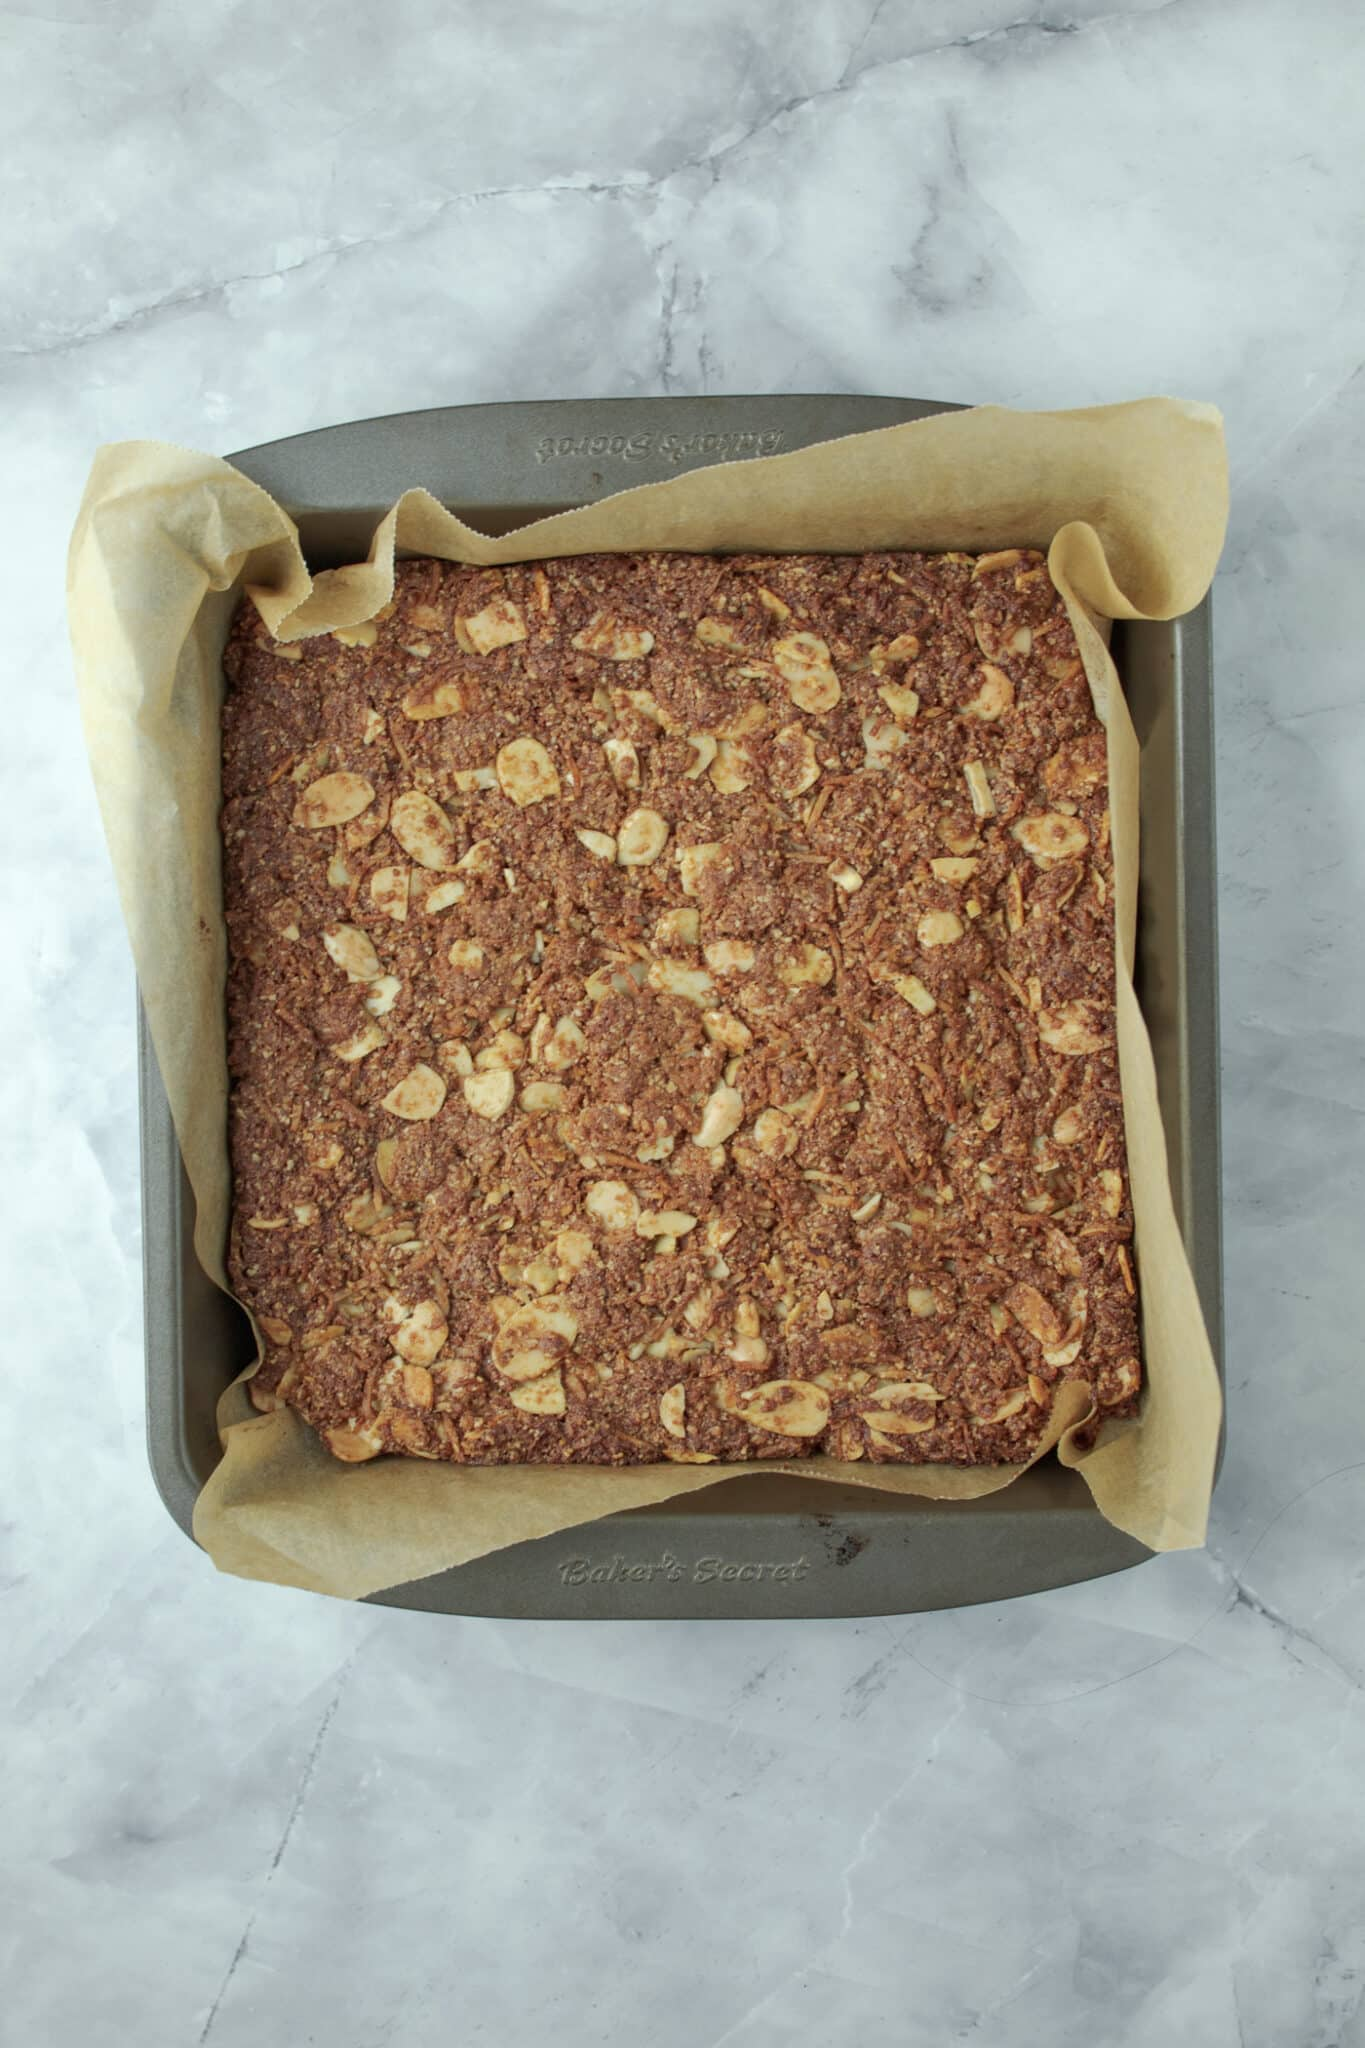 photo of the baked Anzac slice